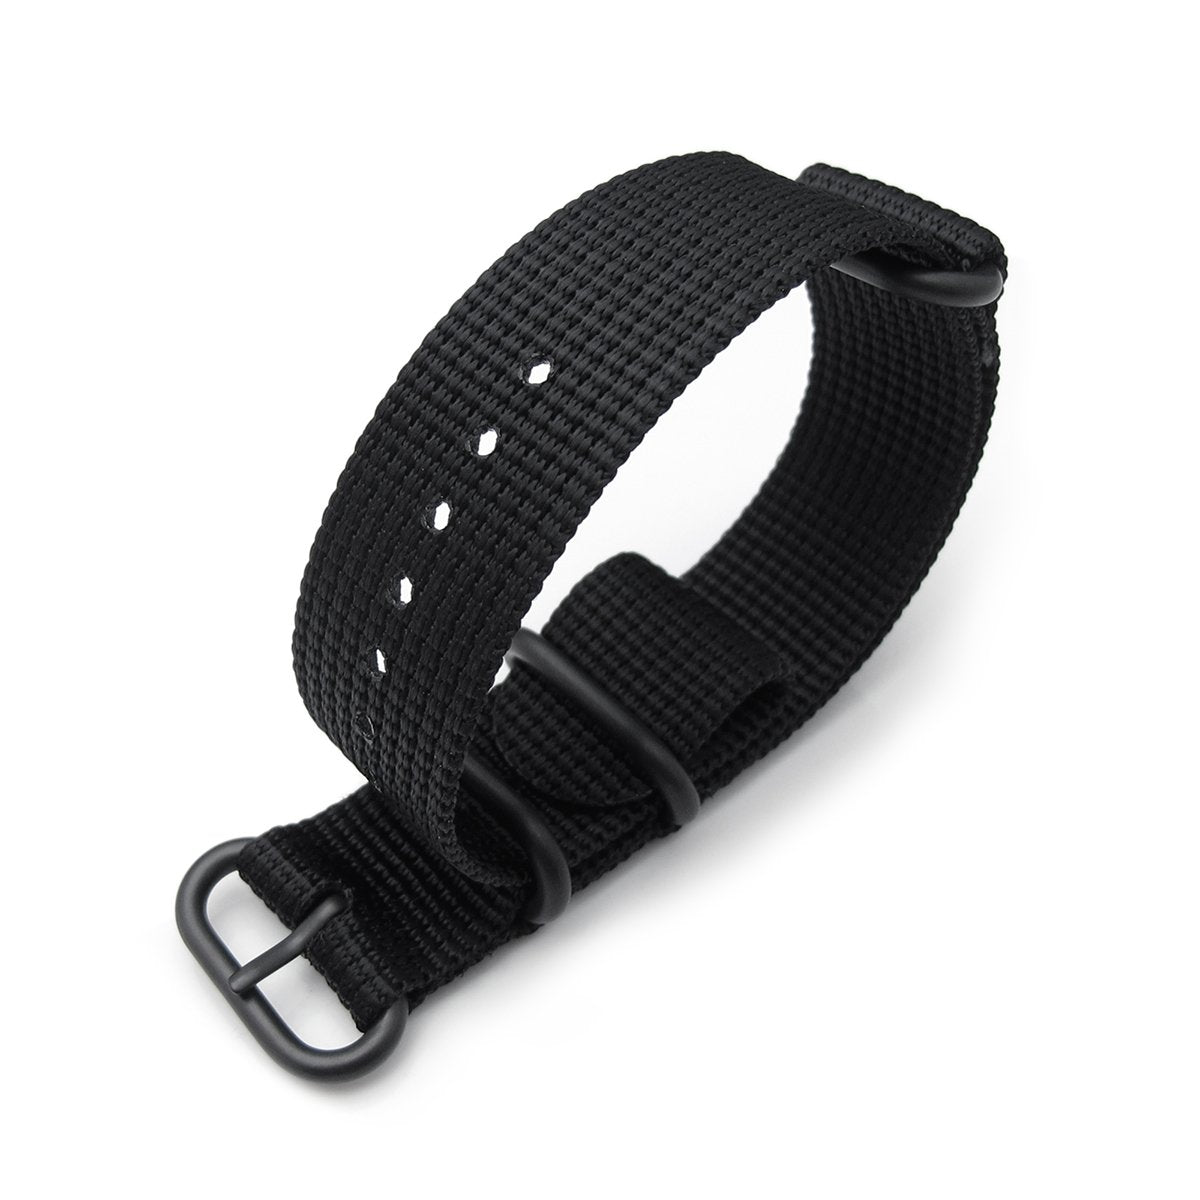 MiLTAT 3 Rings Zulu military watch strap 3D woven nylon armband Black PVD Black 18mm to 26mm Strapcode Watch Bands